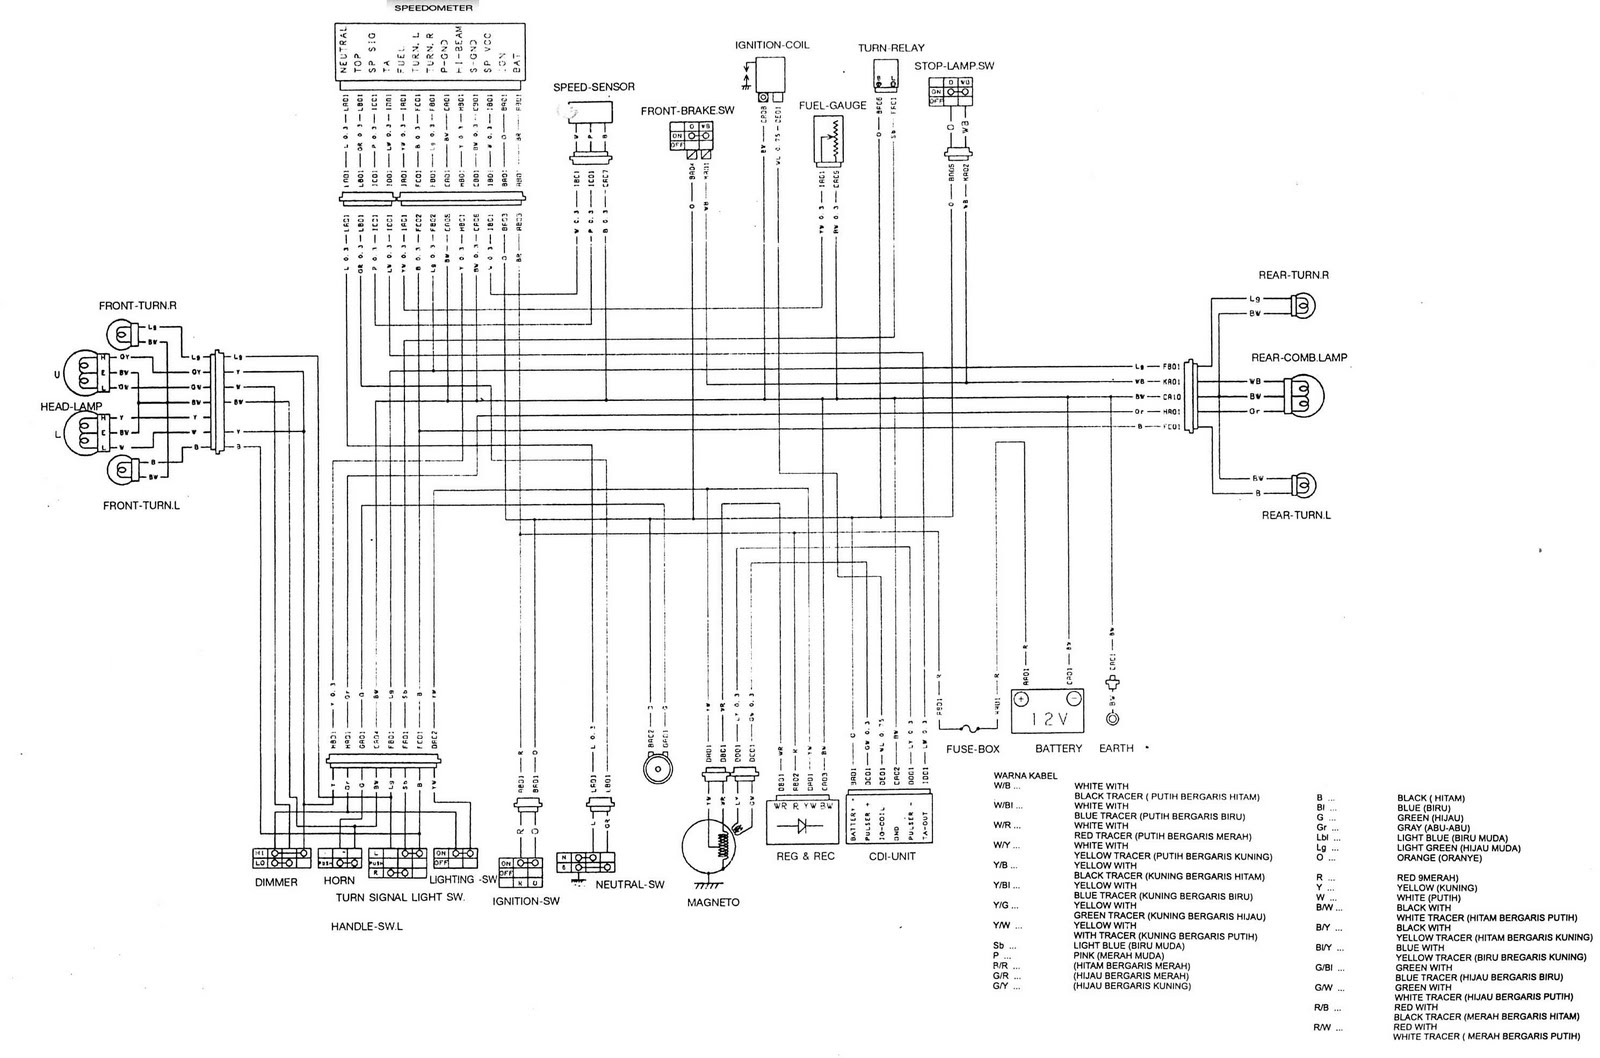 What Is Your Car And Motorcycle: Structural Diagram